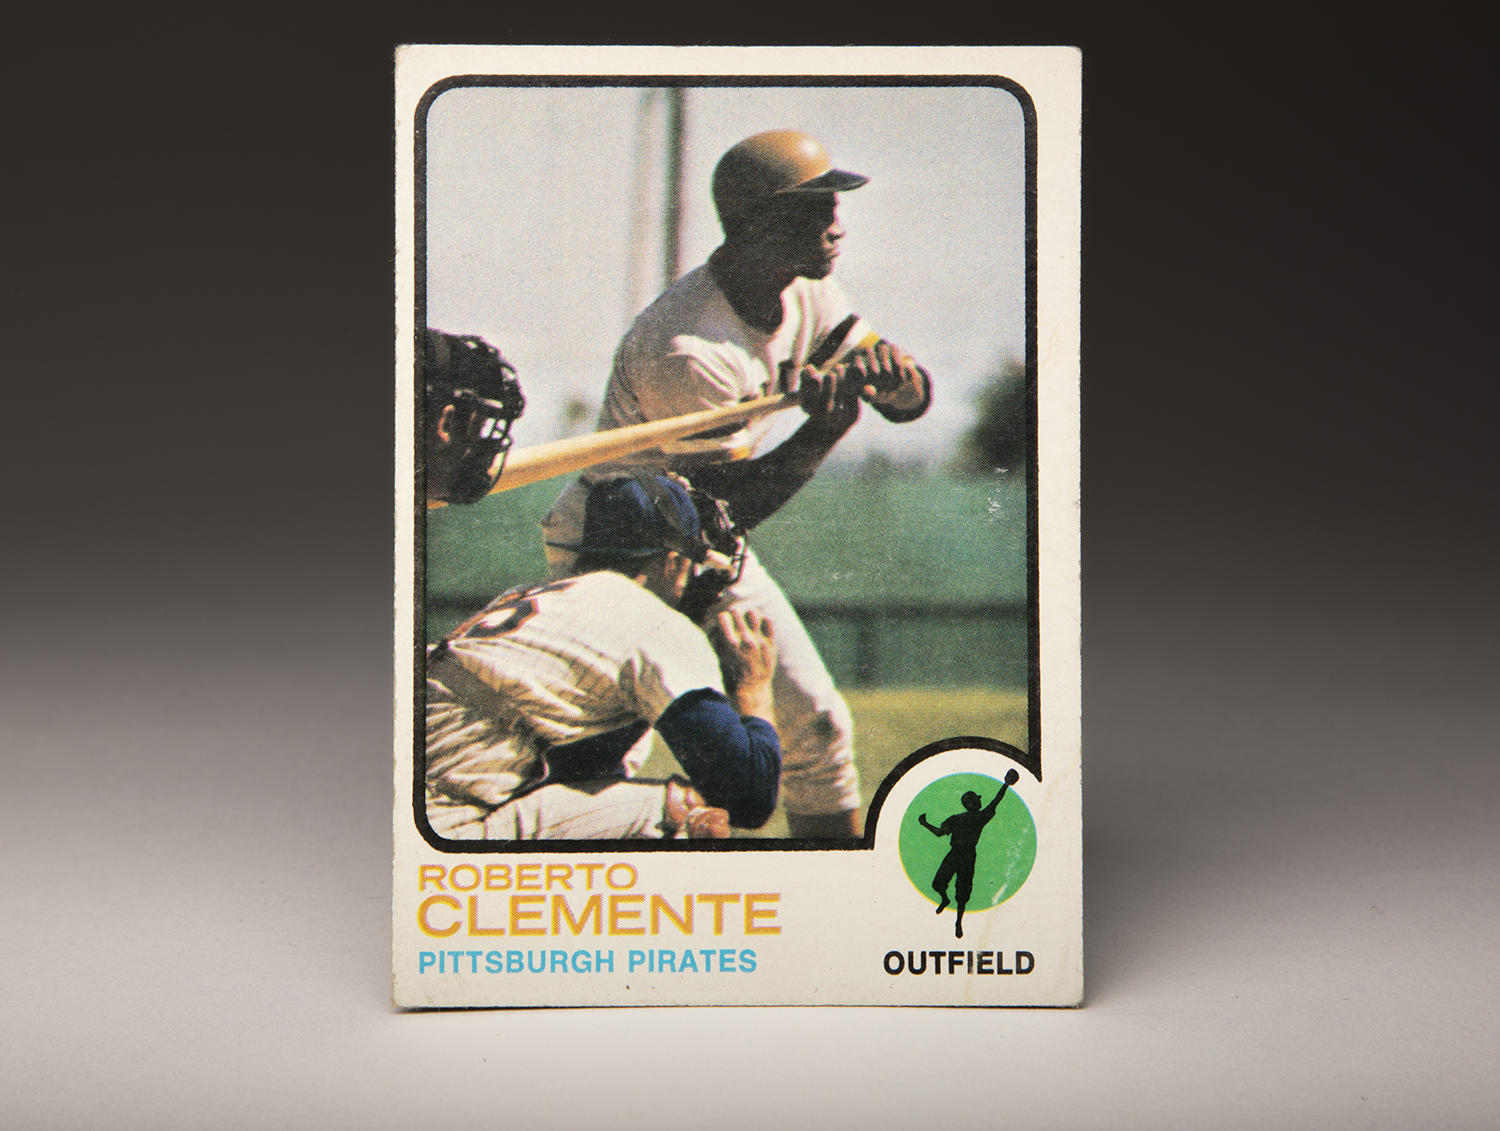 By the time Roberto Clemente's 1973 Topps card hit stores, the world was mourning his tragic passing. But the Topps company decided to keep the card in circulation as a tribute to the future Hall of Famer. (By Photographer Milo Stewart Jr. / National Baseball Hall of Fame and Museum)